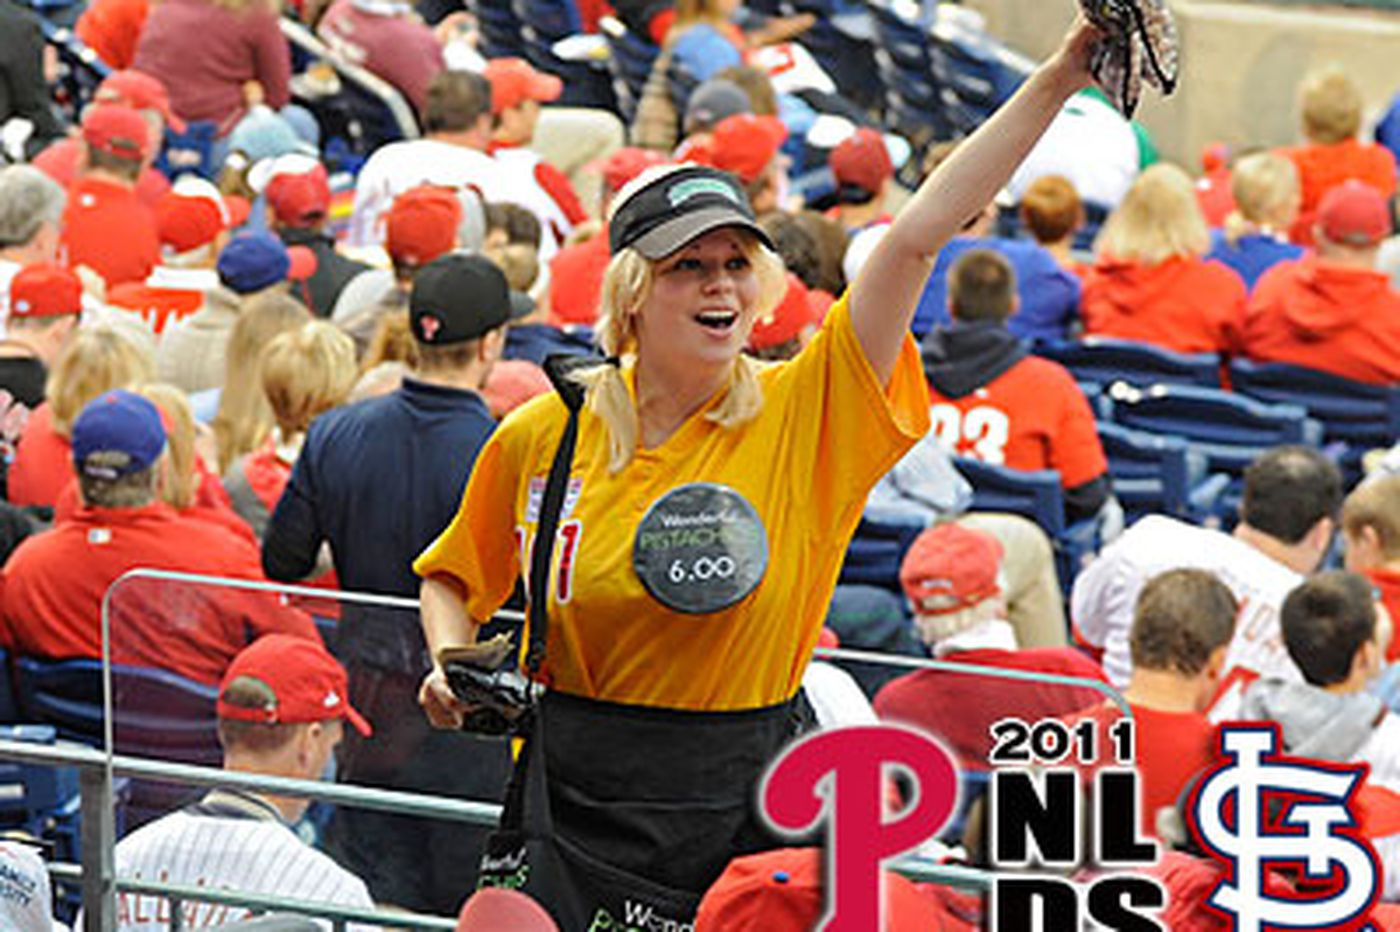 Pistachio Girl on her own in peanuts-and-Cracker-Jack world of Phillies ballpark